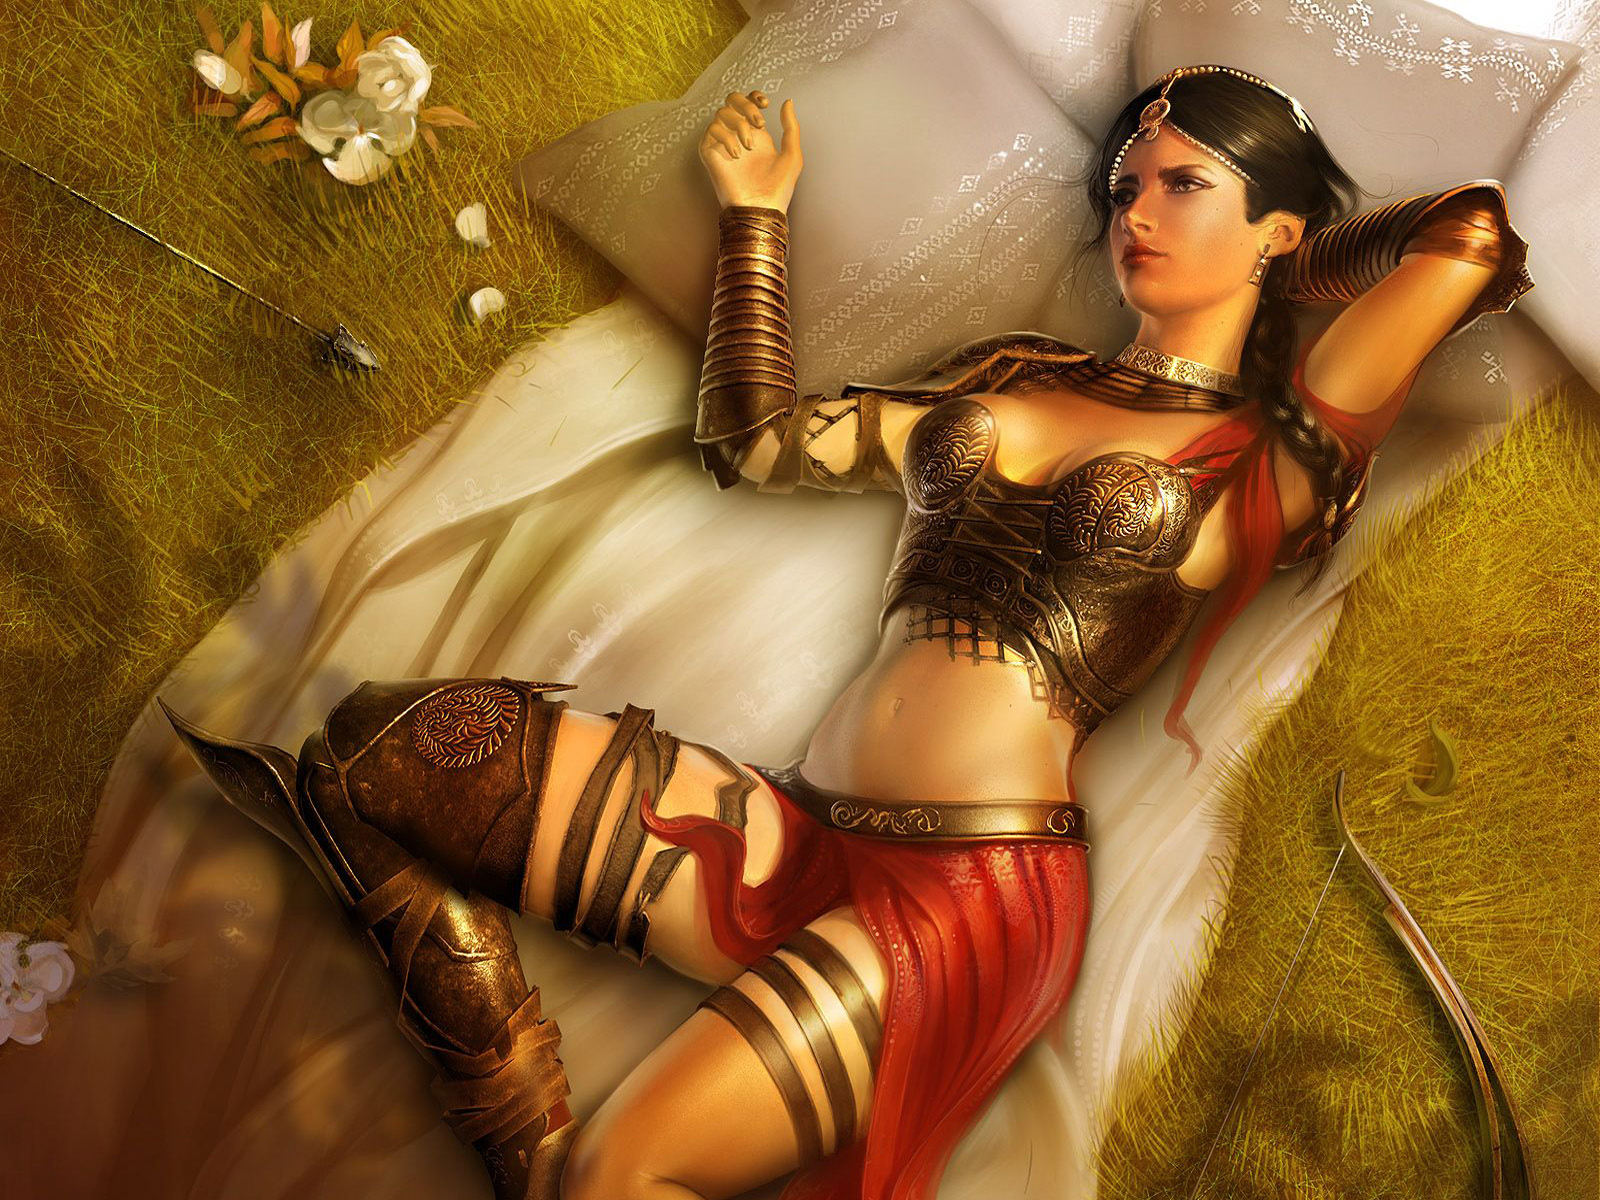 Video Game - Prince Of Persia  Assassin's Creed Bakgrund